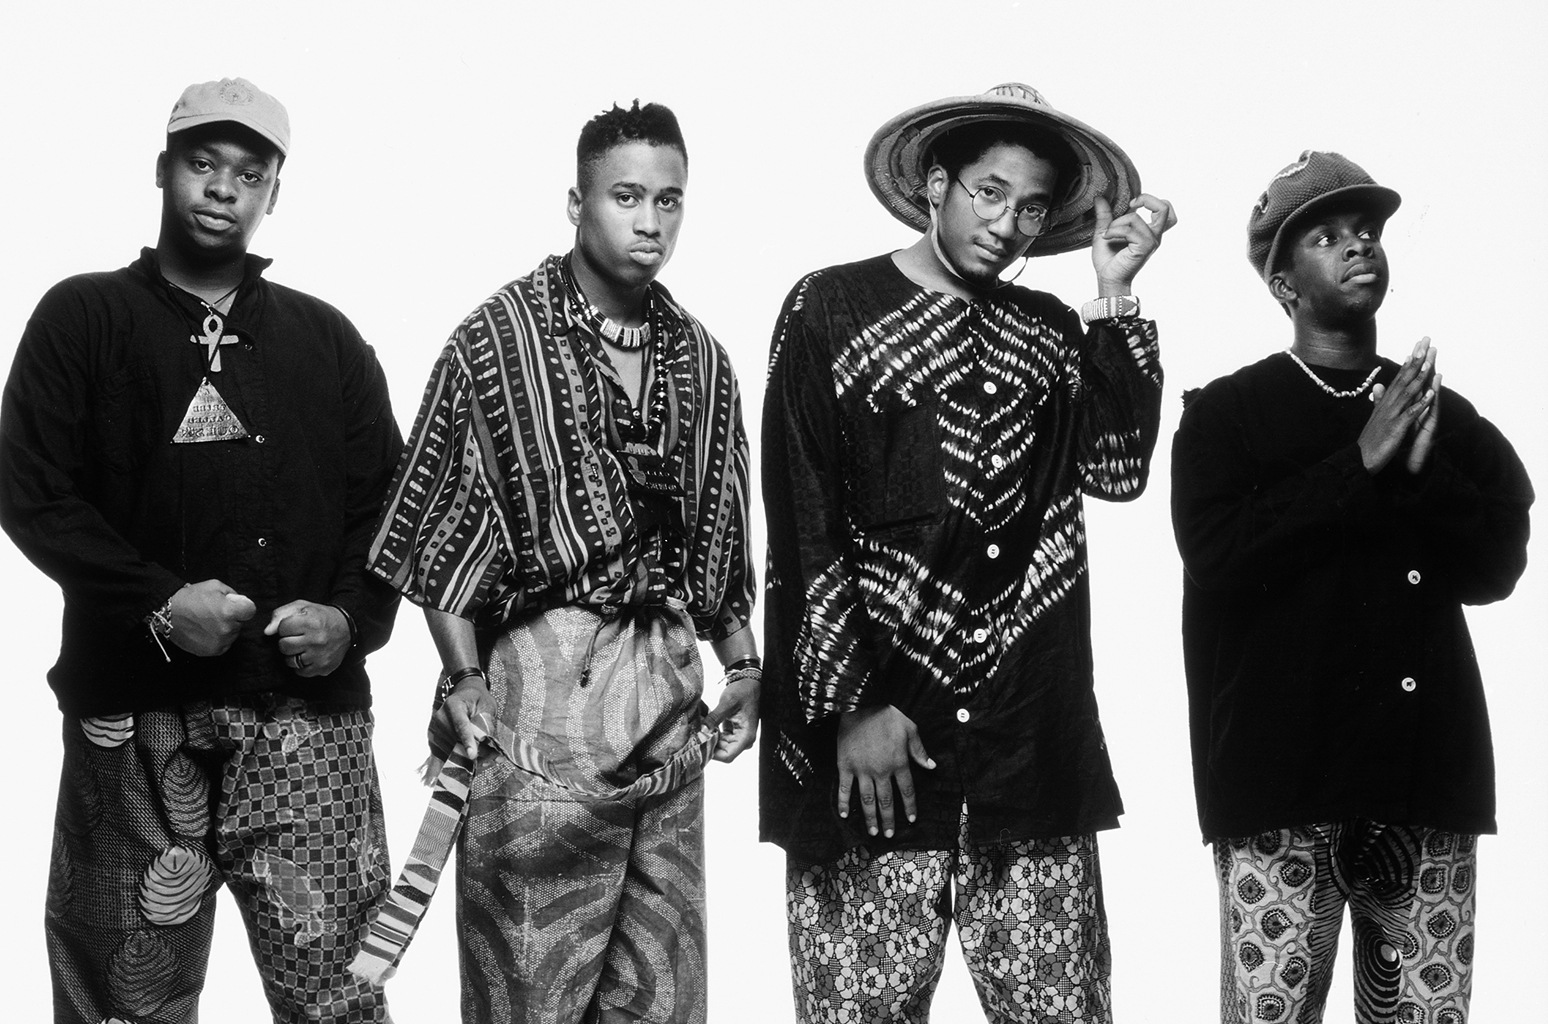 a tribe called quest clubberia クラベリア